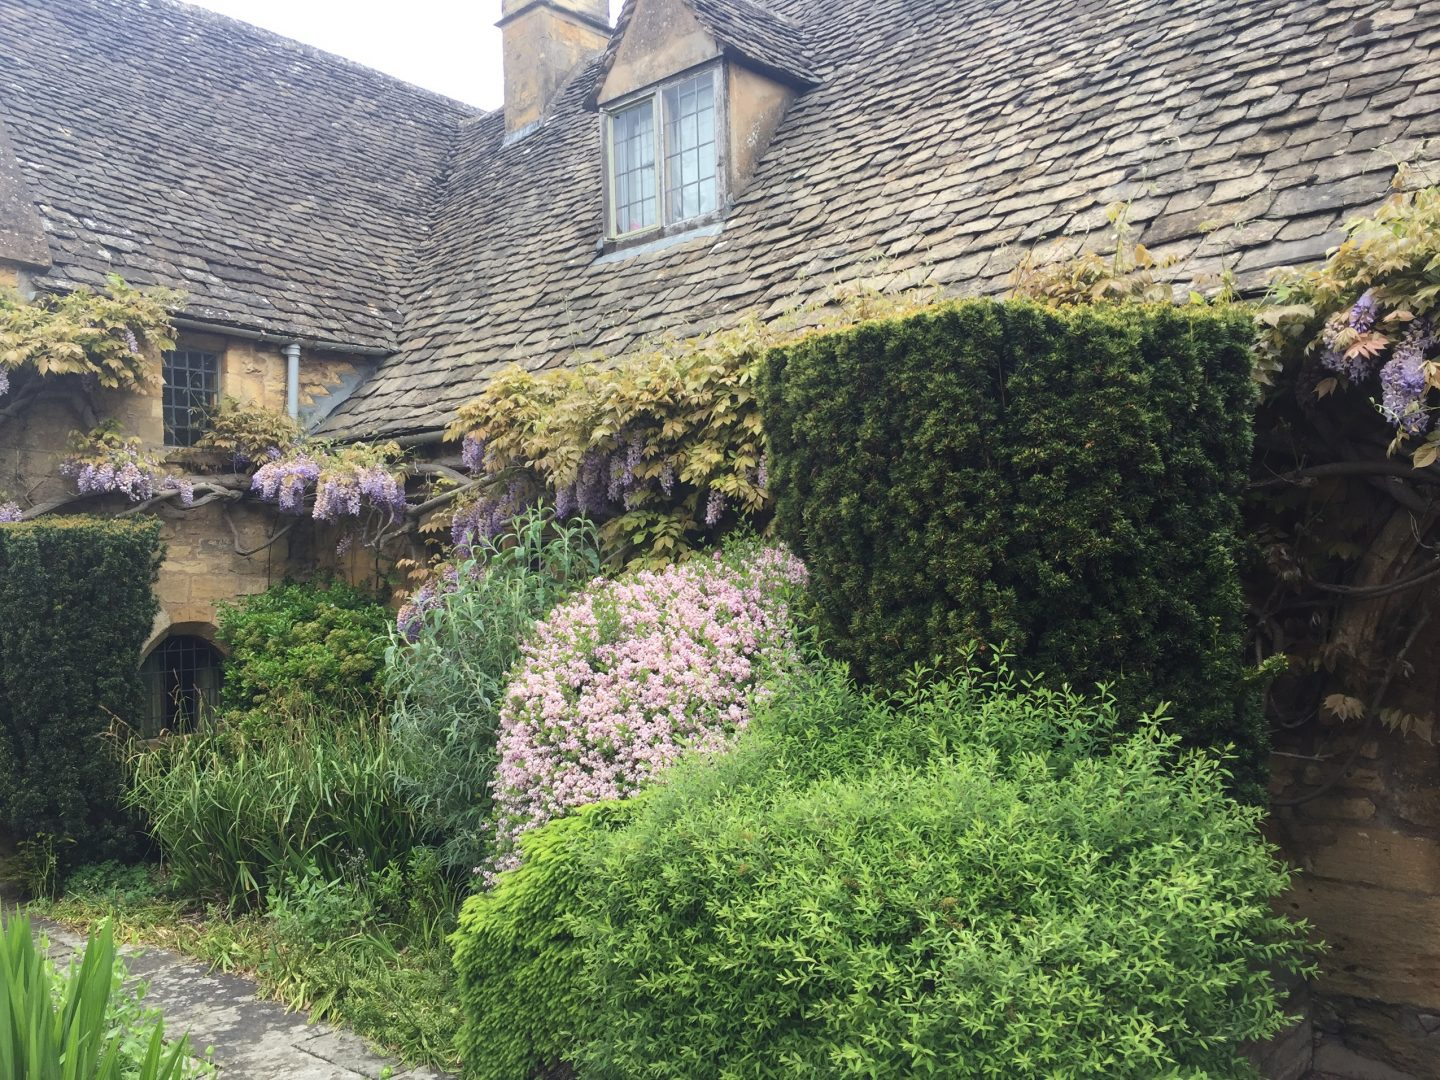 Weekend trip to the Cotswolds